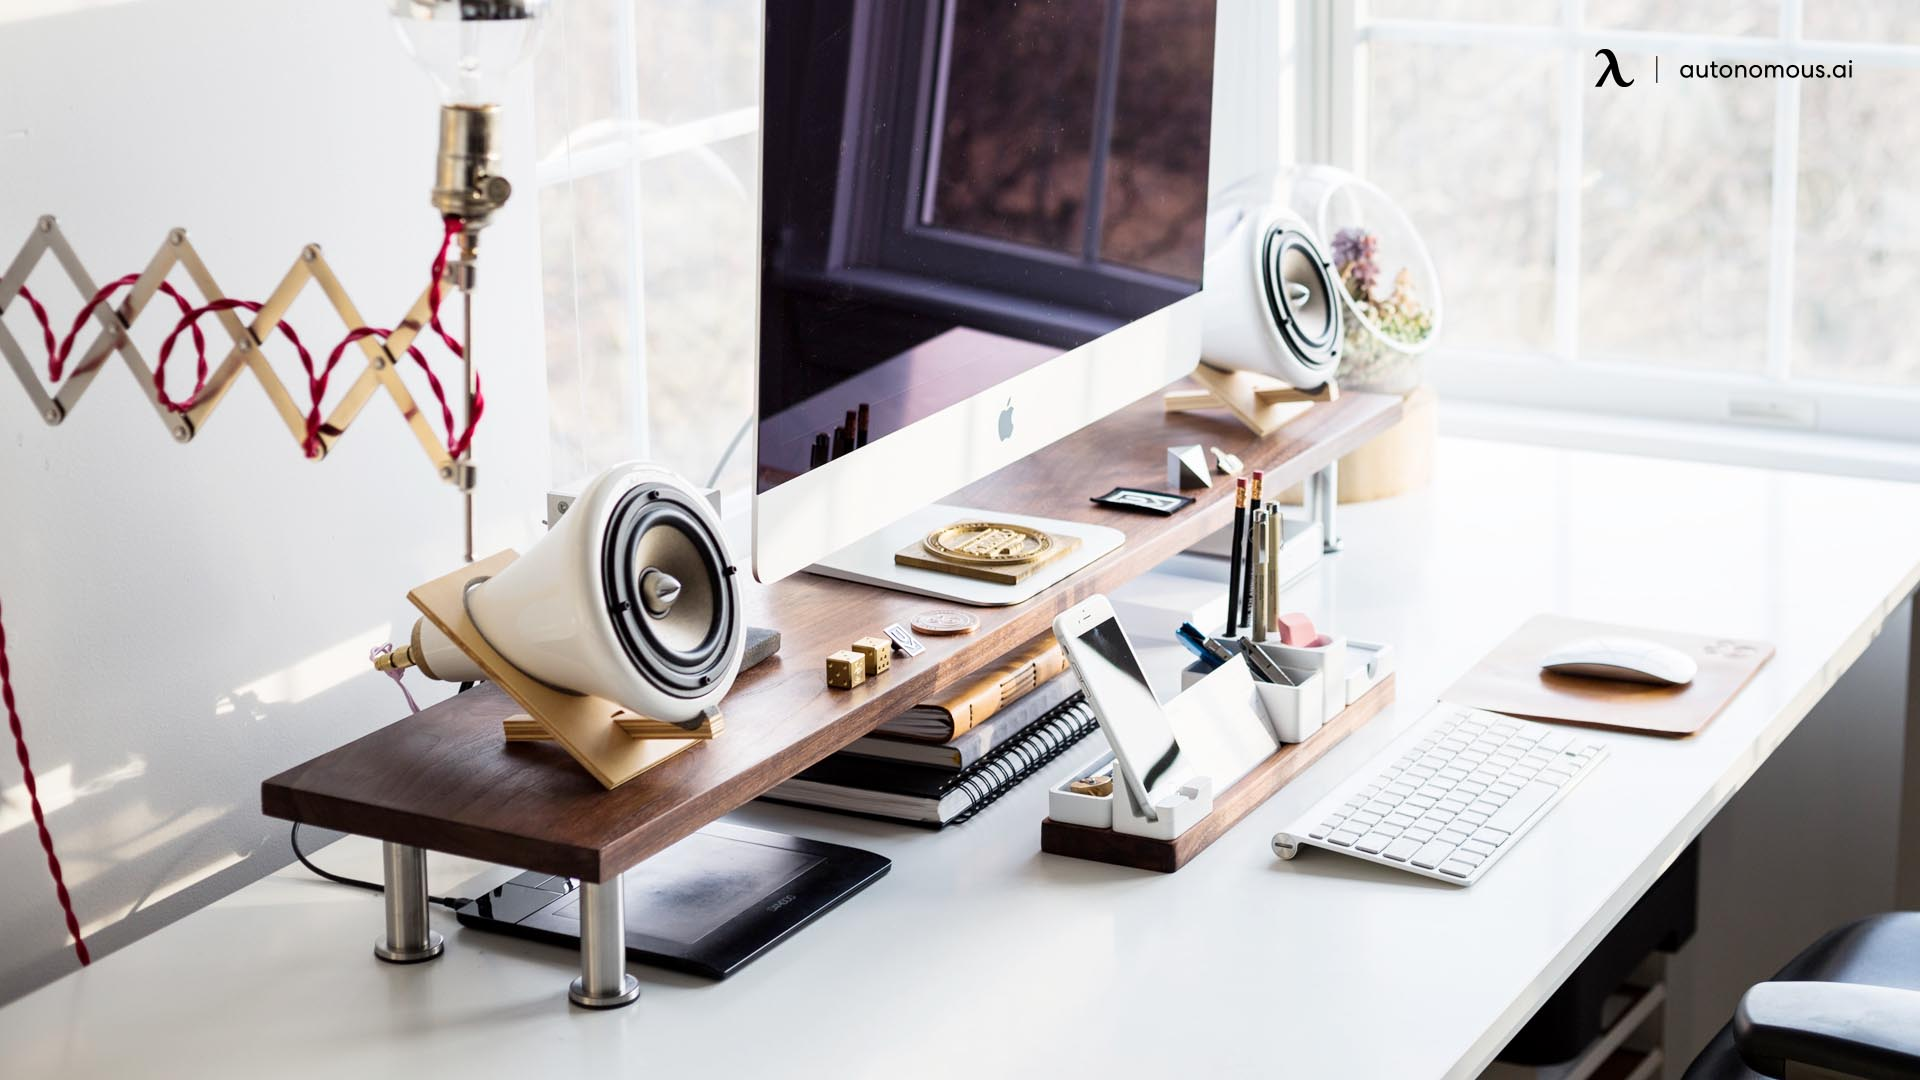 What Are Some Must-Have Desk Accessories You Should Get?